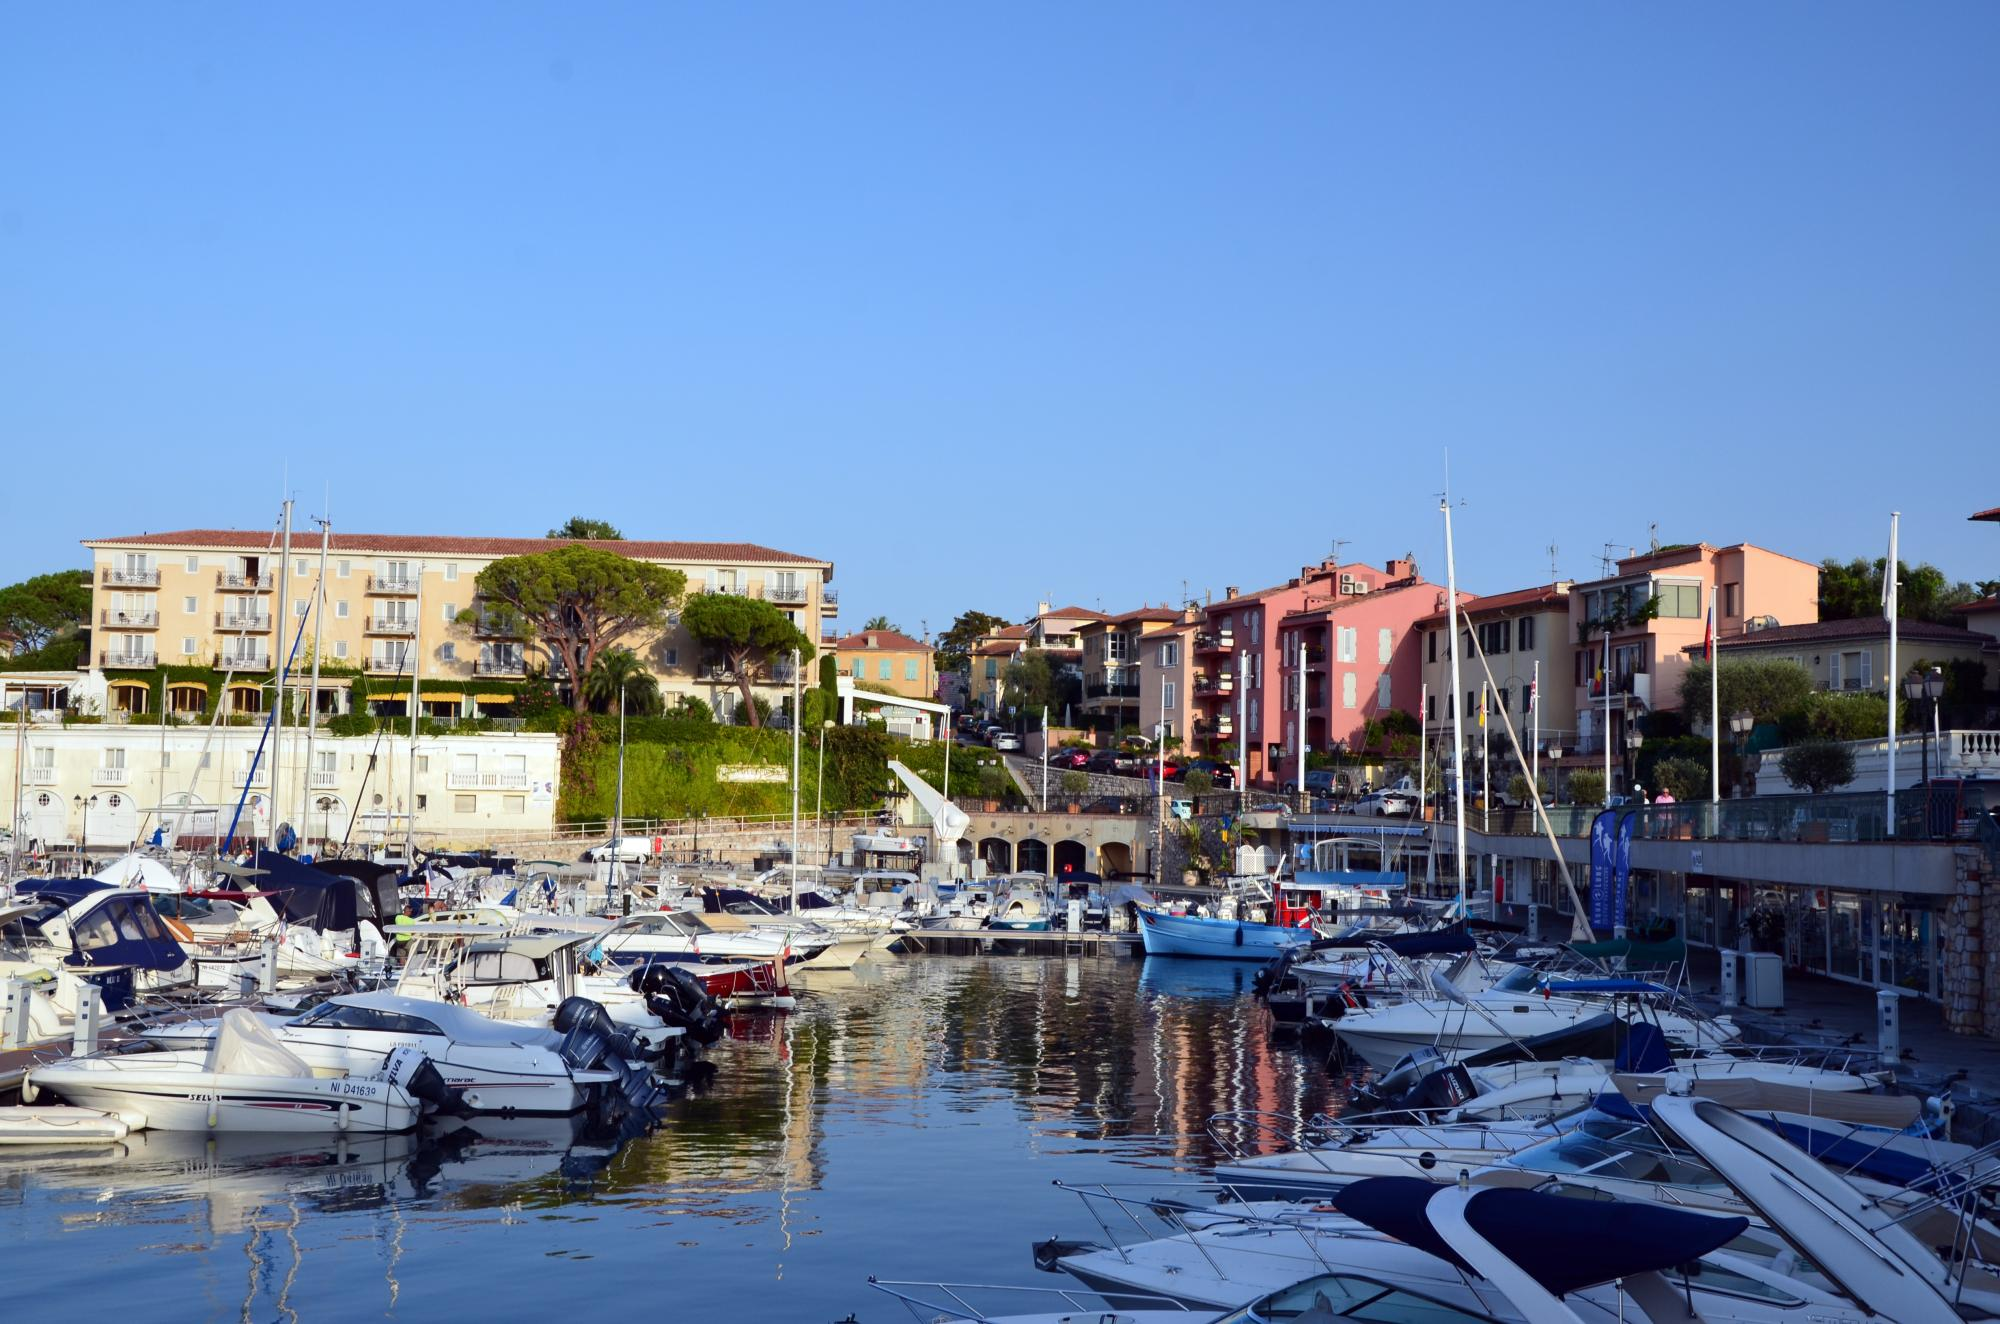 Discover The French Riviera - Vacation package : France Coast to Coast  - Land of France, travel agency in France